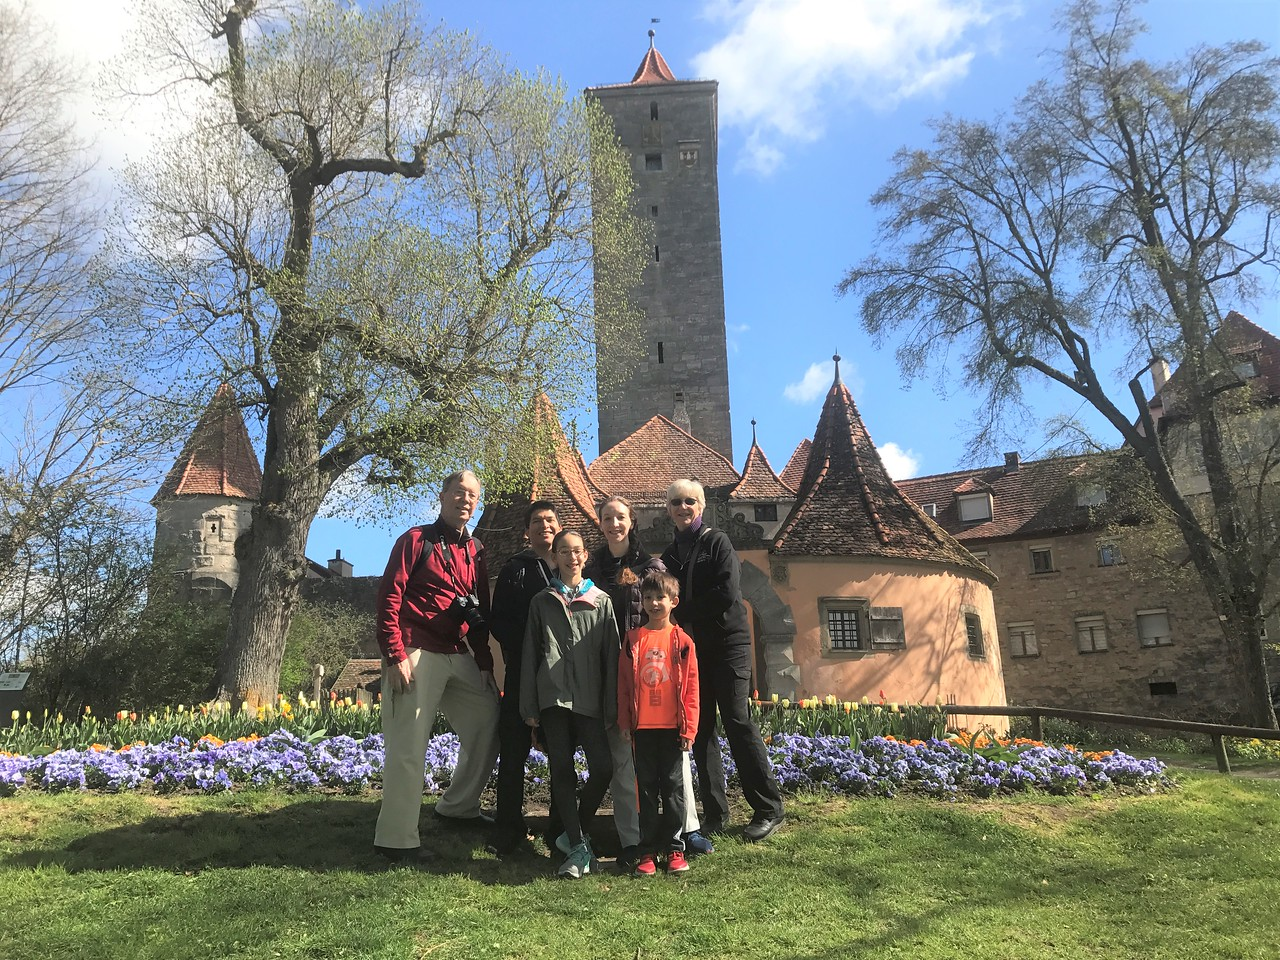 Us in the Castle Gardens In front of the Burgtor Gate.